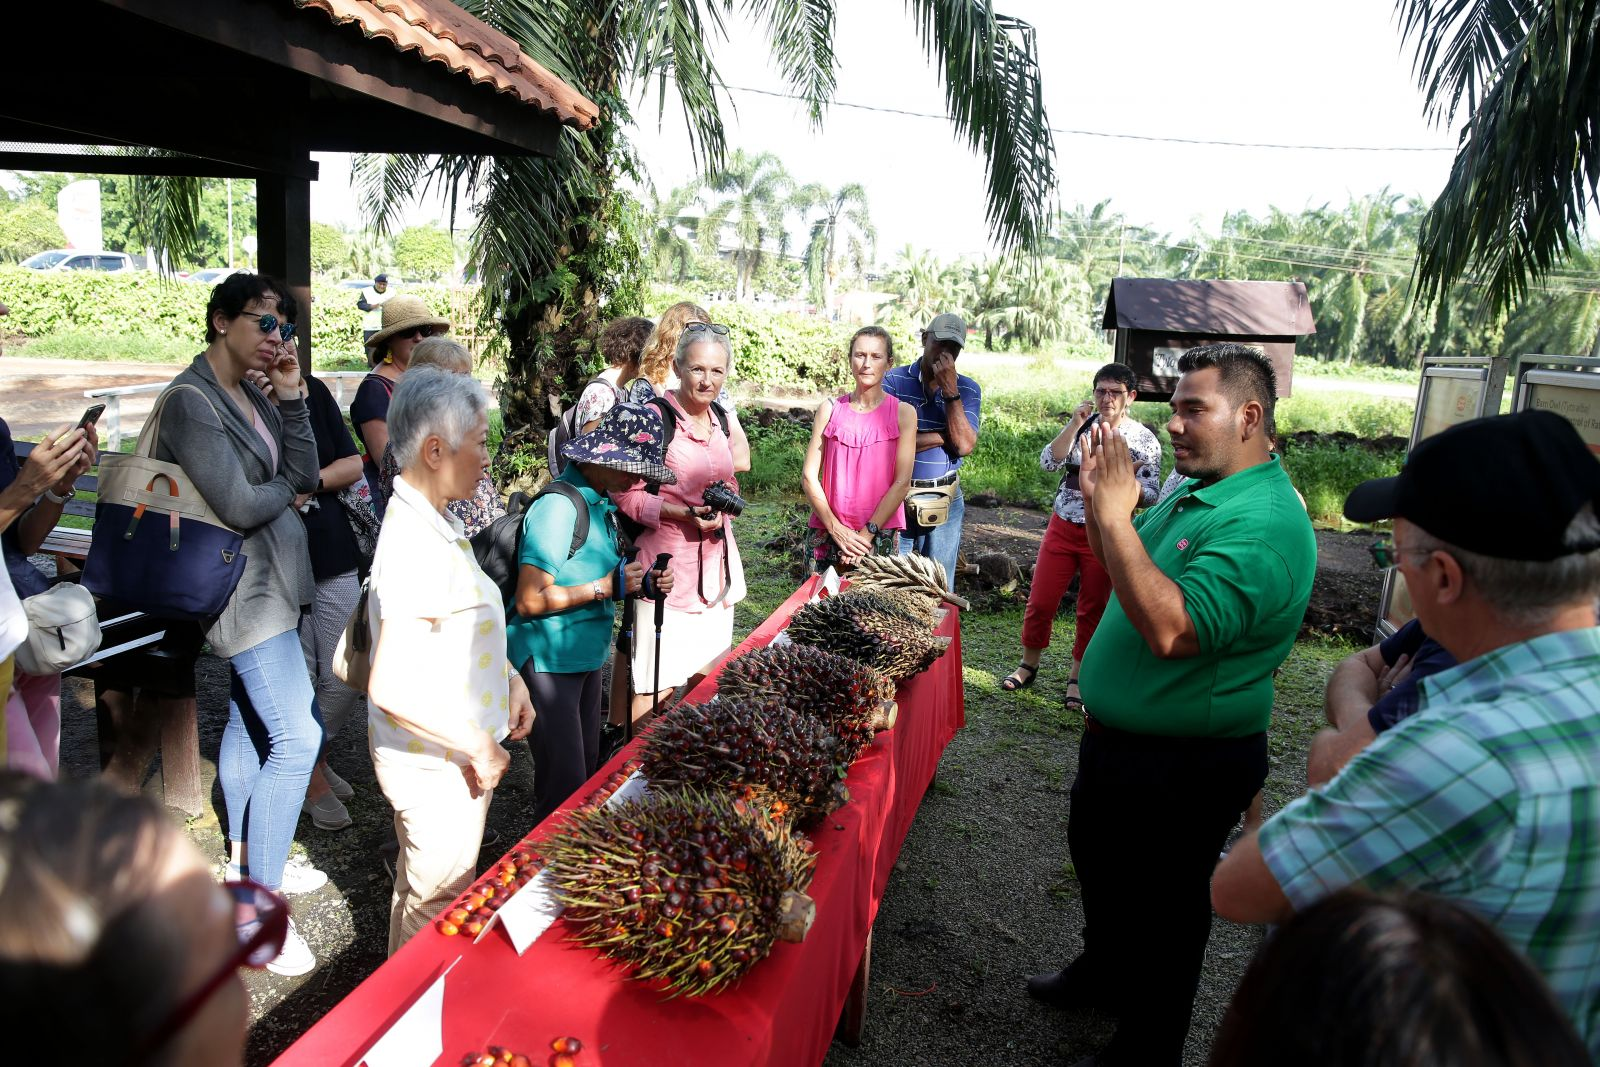 Dec 2018 - Visit to the Sime Darby Palm Oil Plantation ...